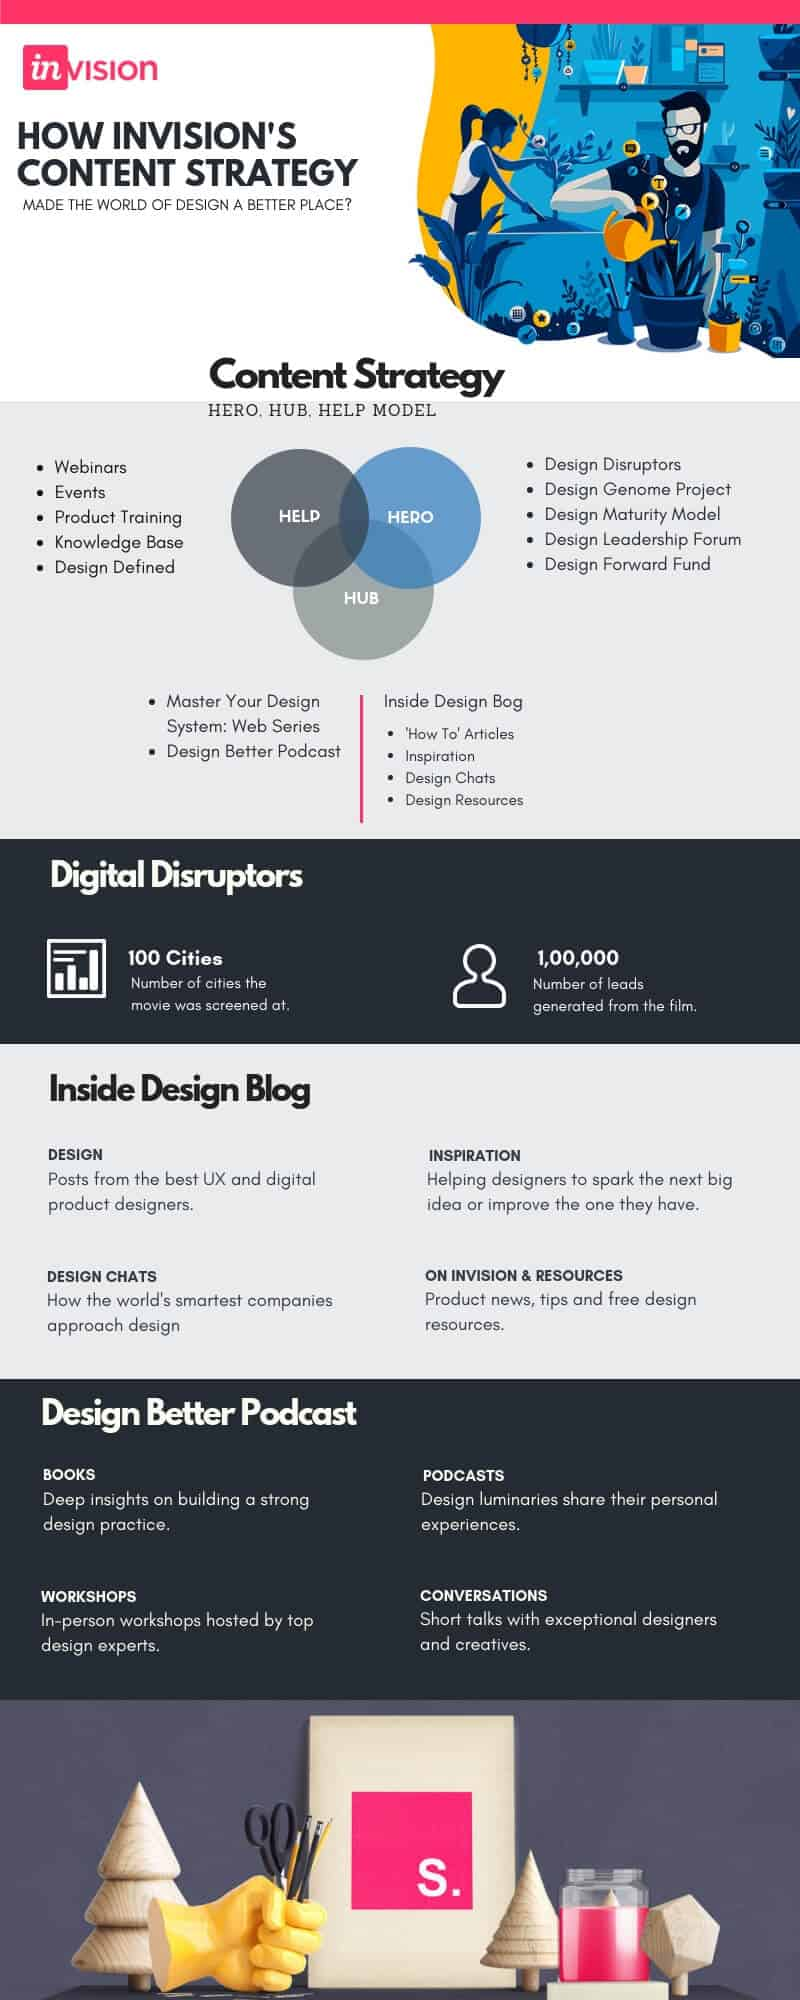 Inside InVision's Content Strategy Infographic